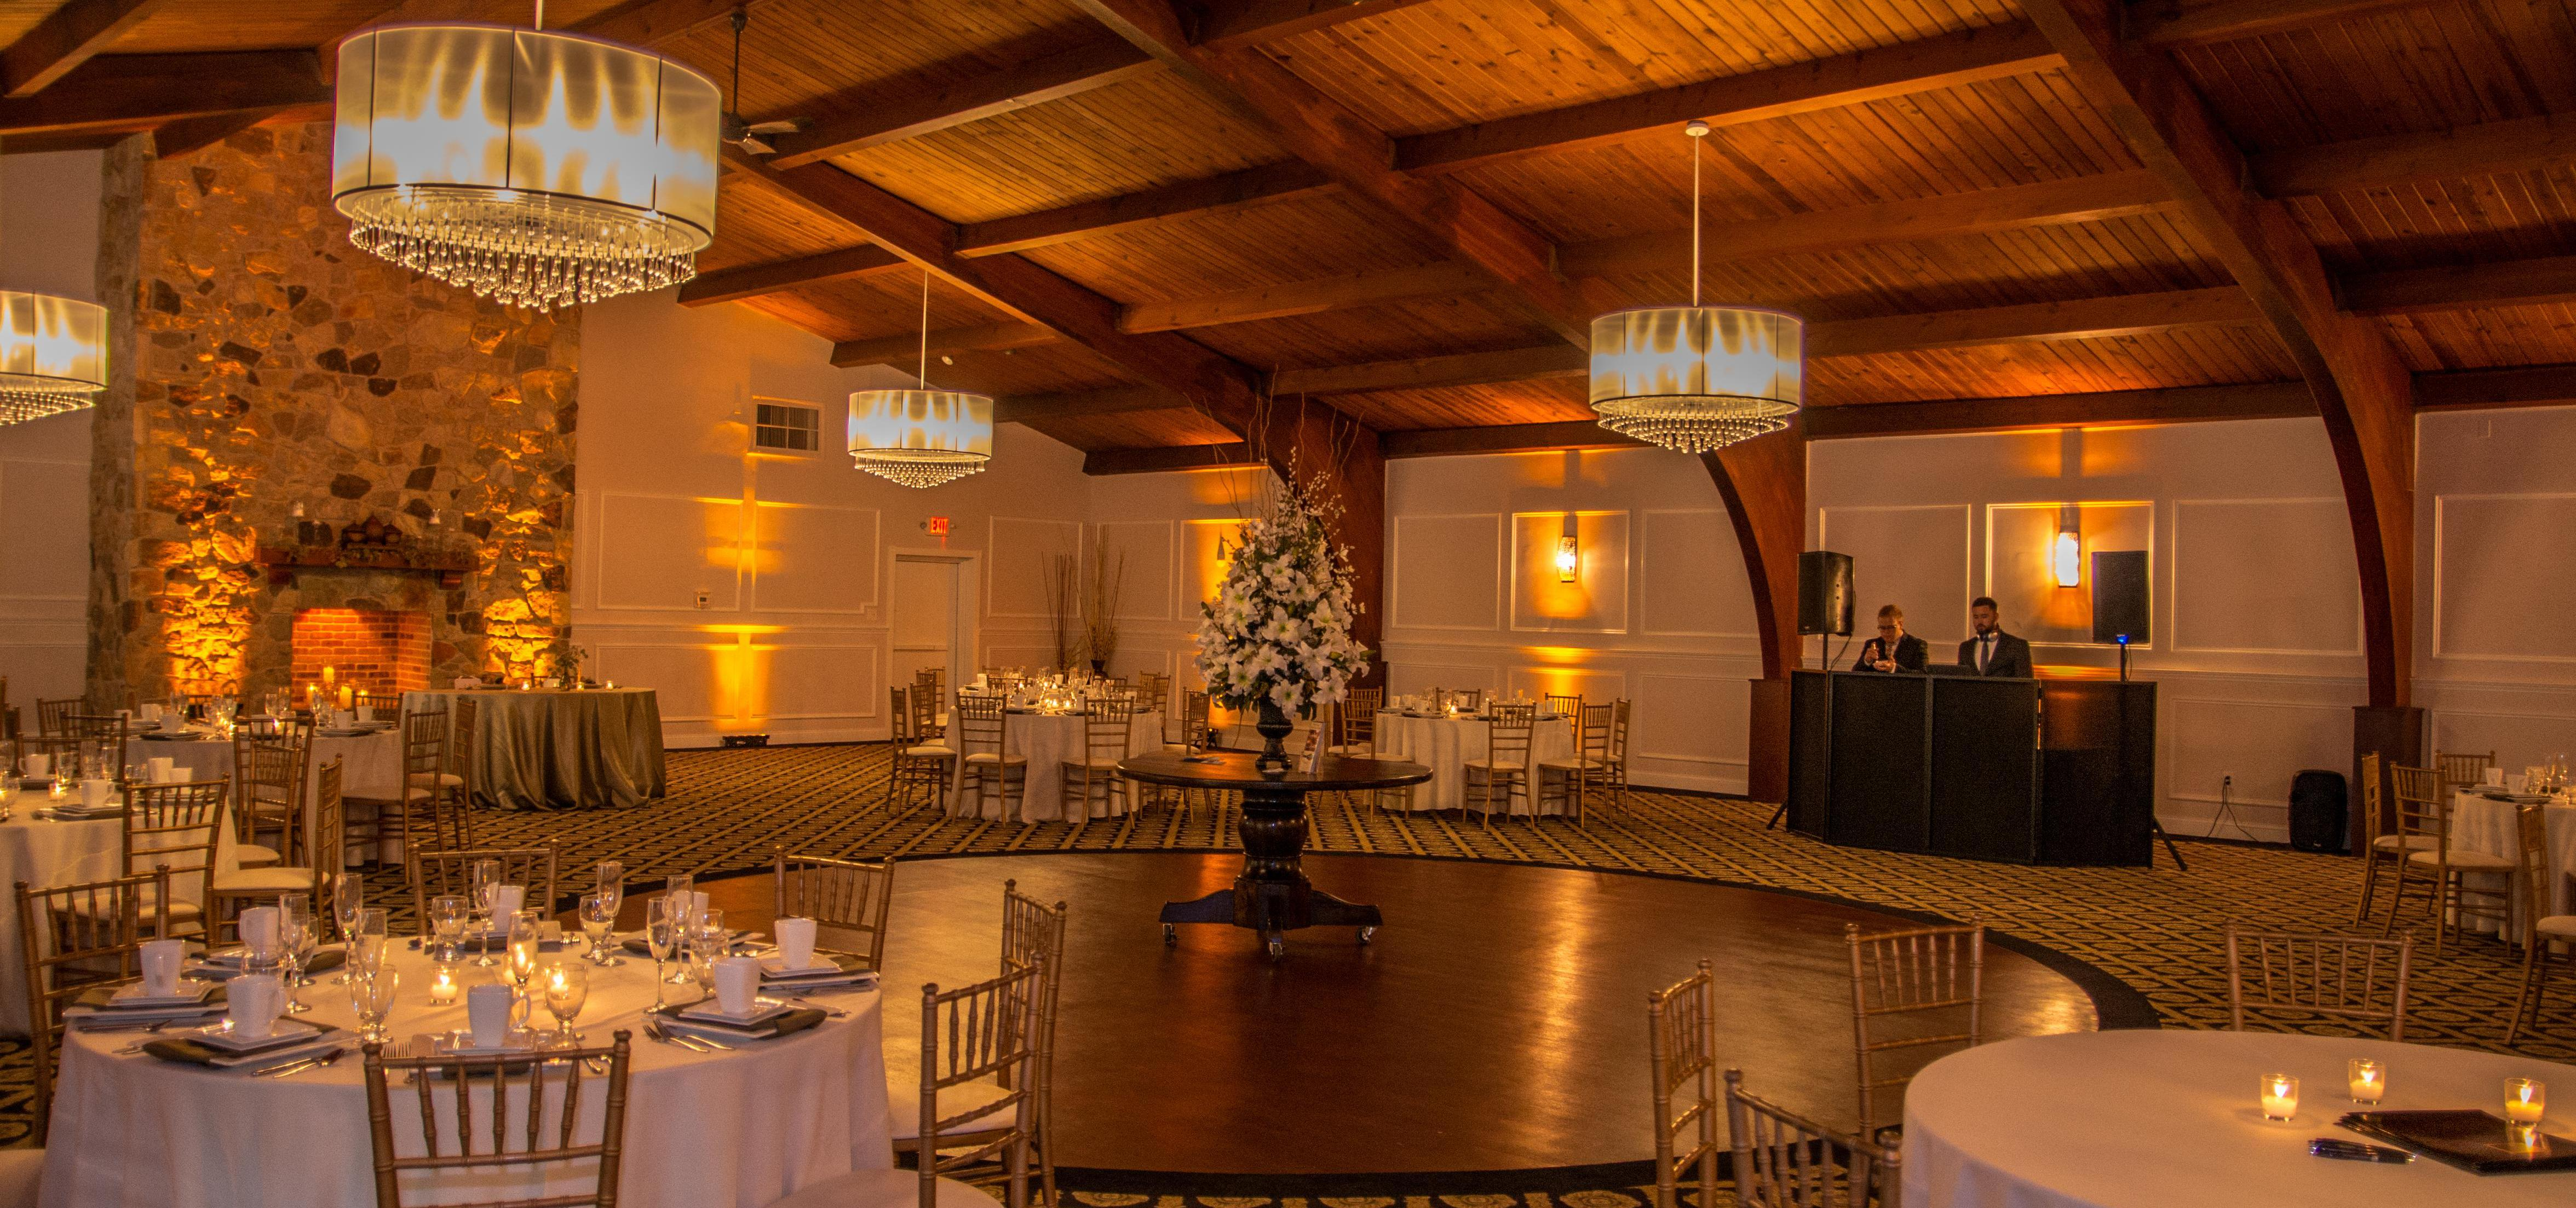 The Marian House by Willow & Sage Catering and Events wedding Central Jersey